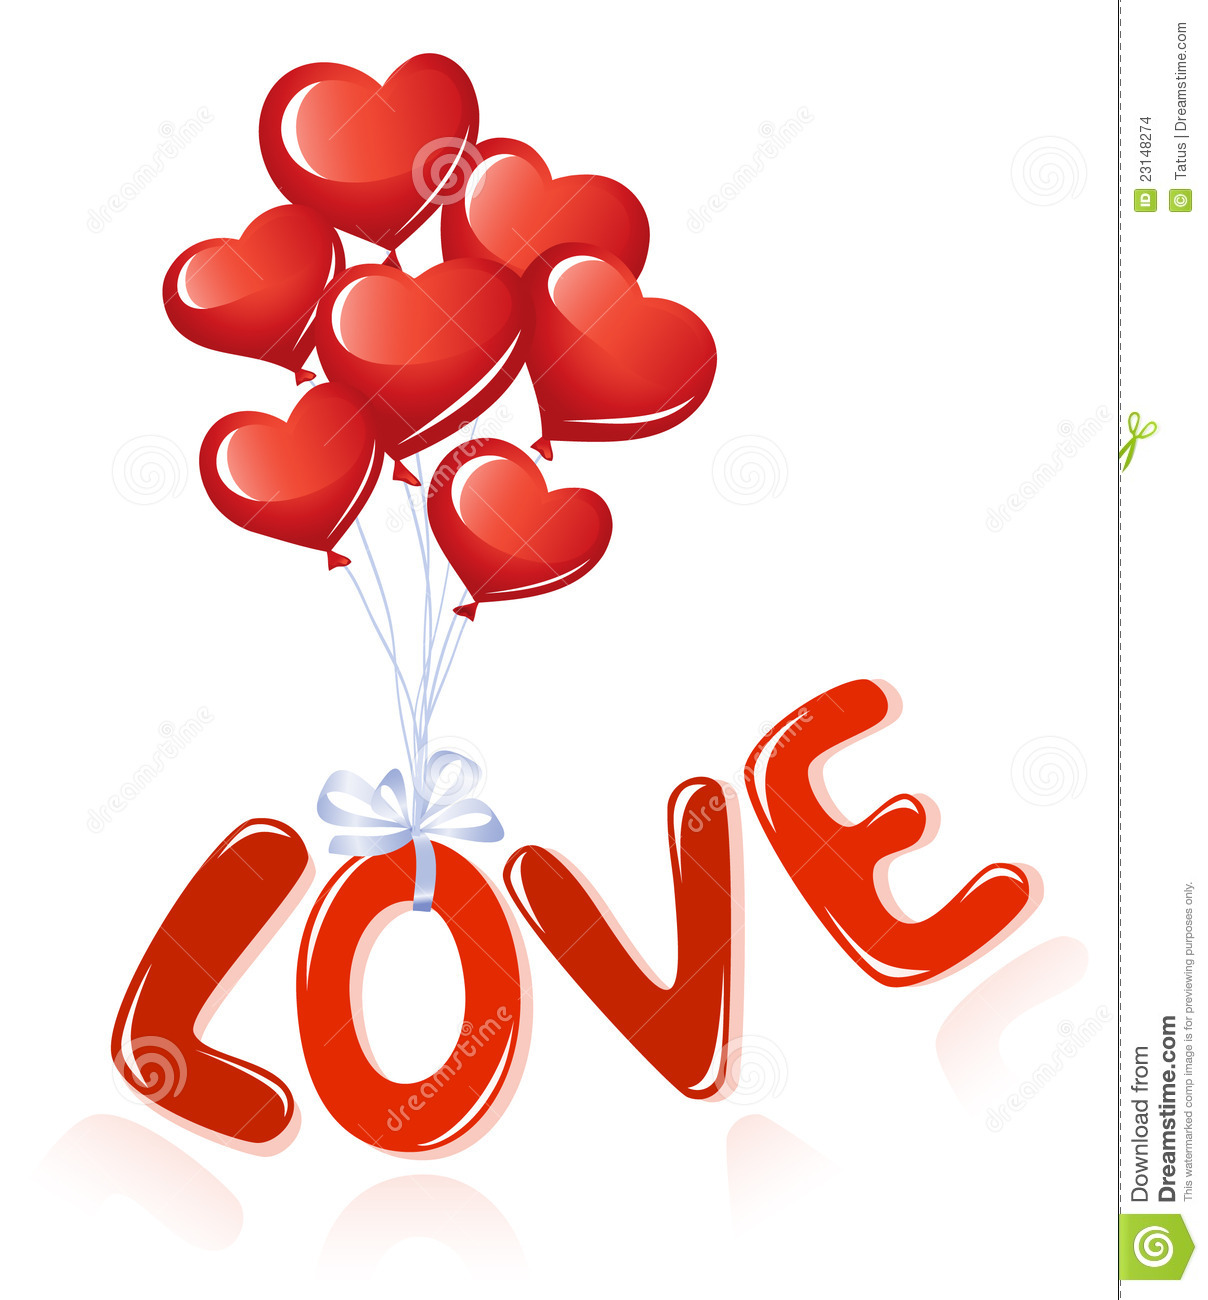 Love Message With Heart Balloons Stock Images - Image: 23148274